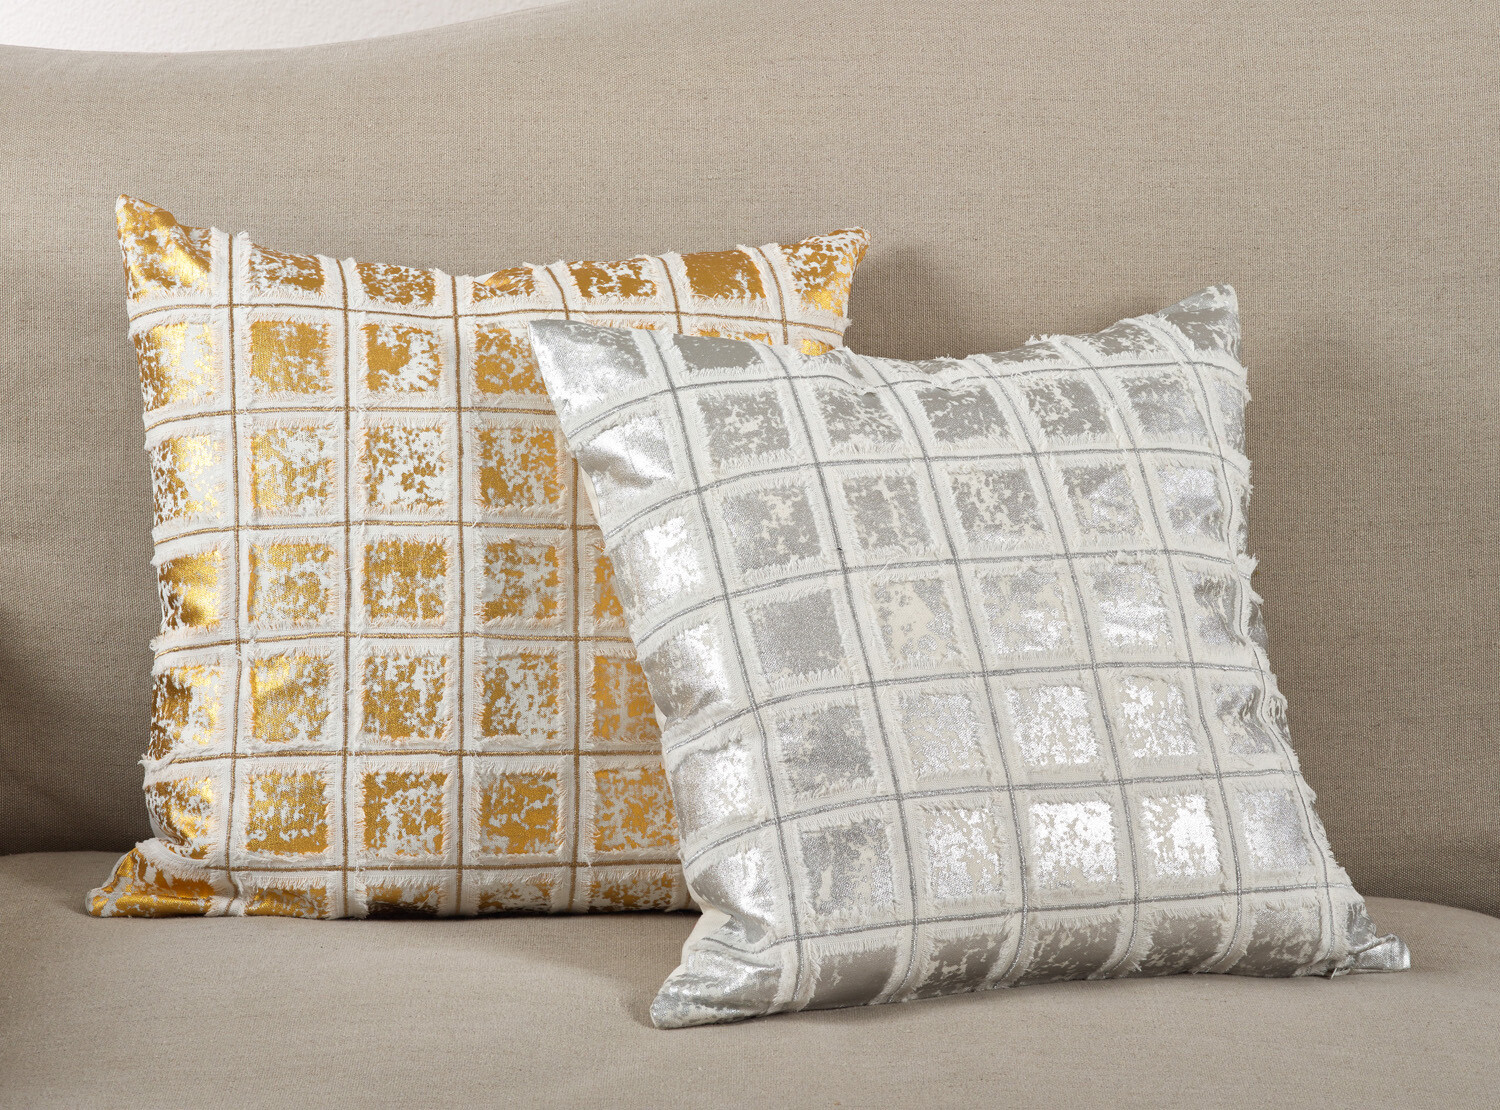 SS 220 18x18 Gold Pillow Cover